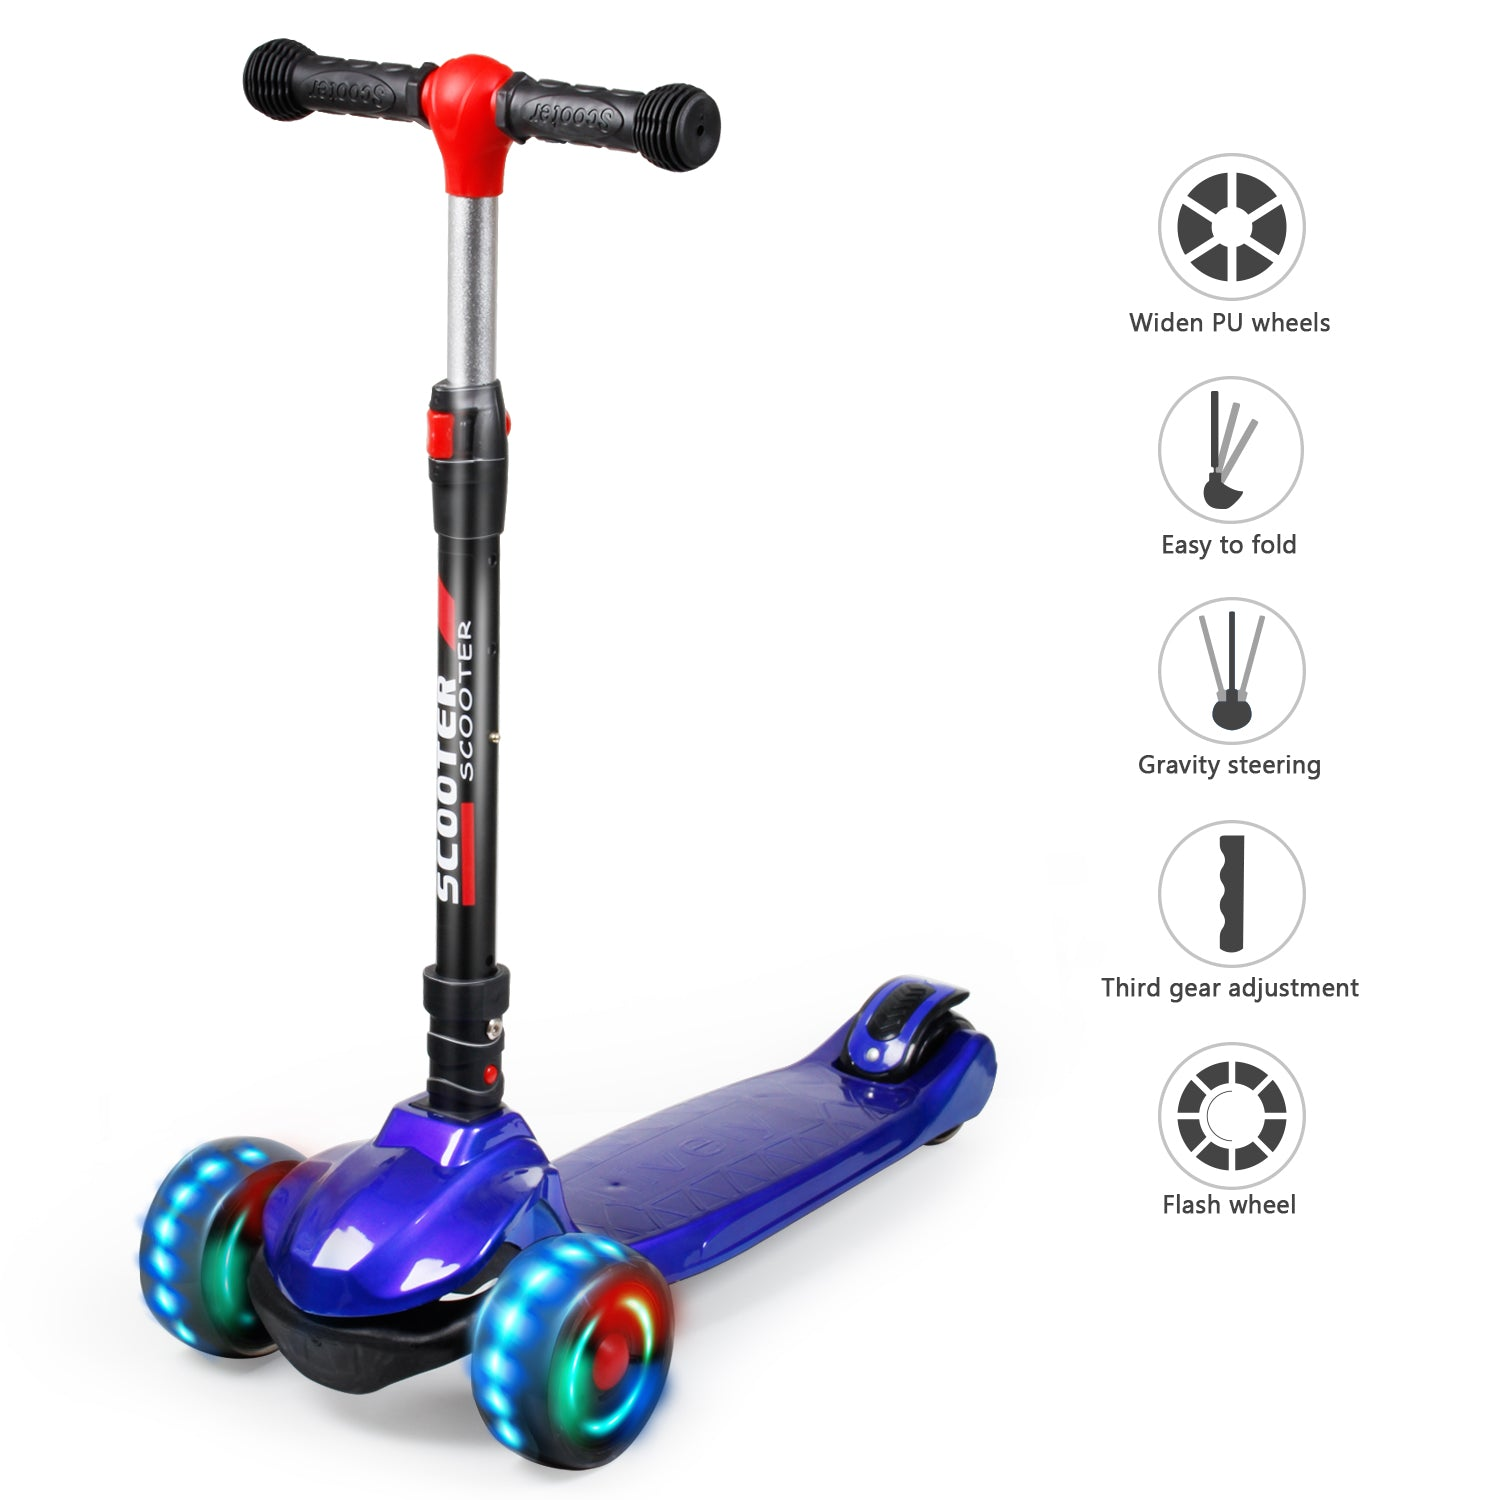 YHR Toddler Scooter  - Kick Scooter for Kids 2-8 Year Old boy & Girl - Paint process